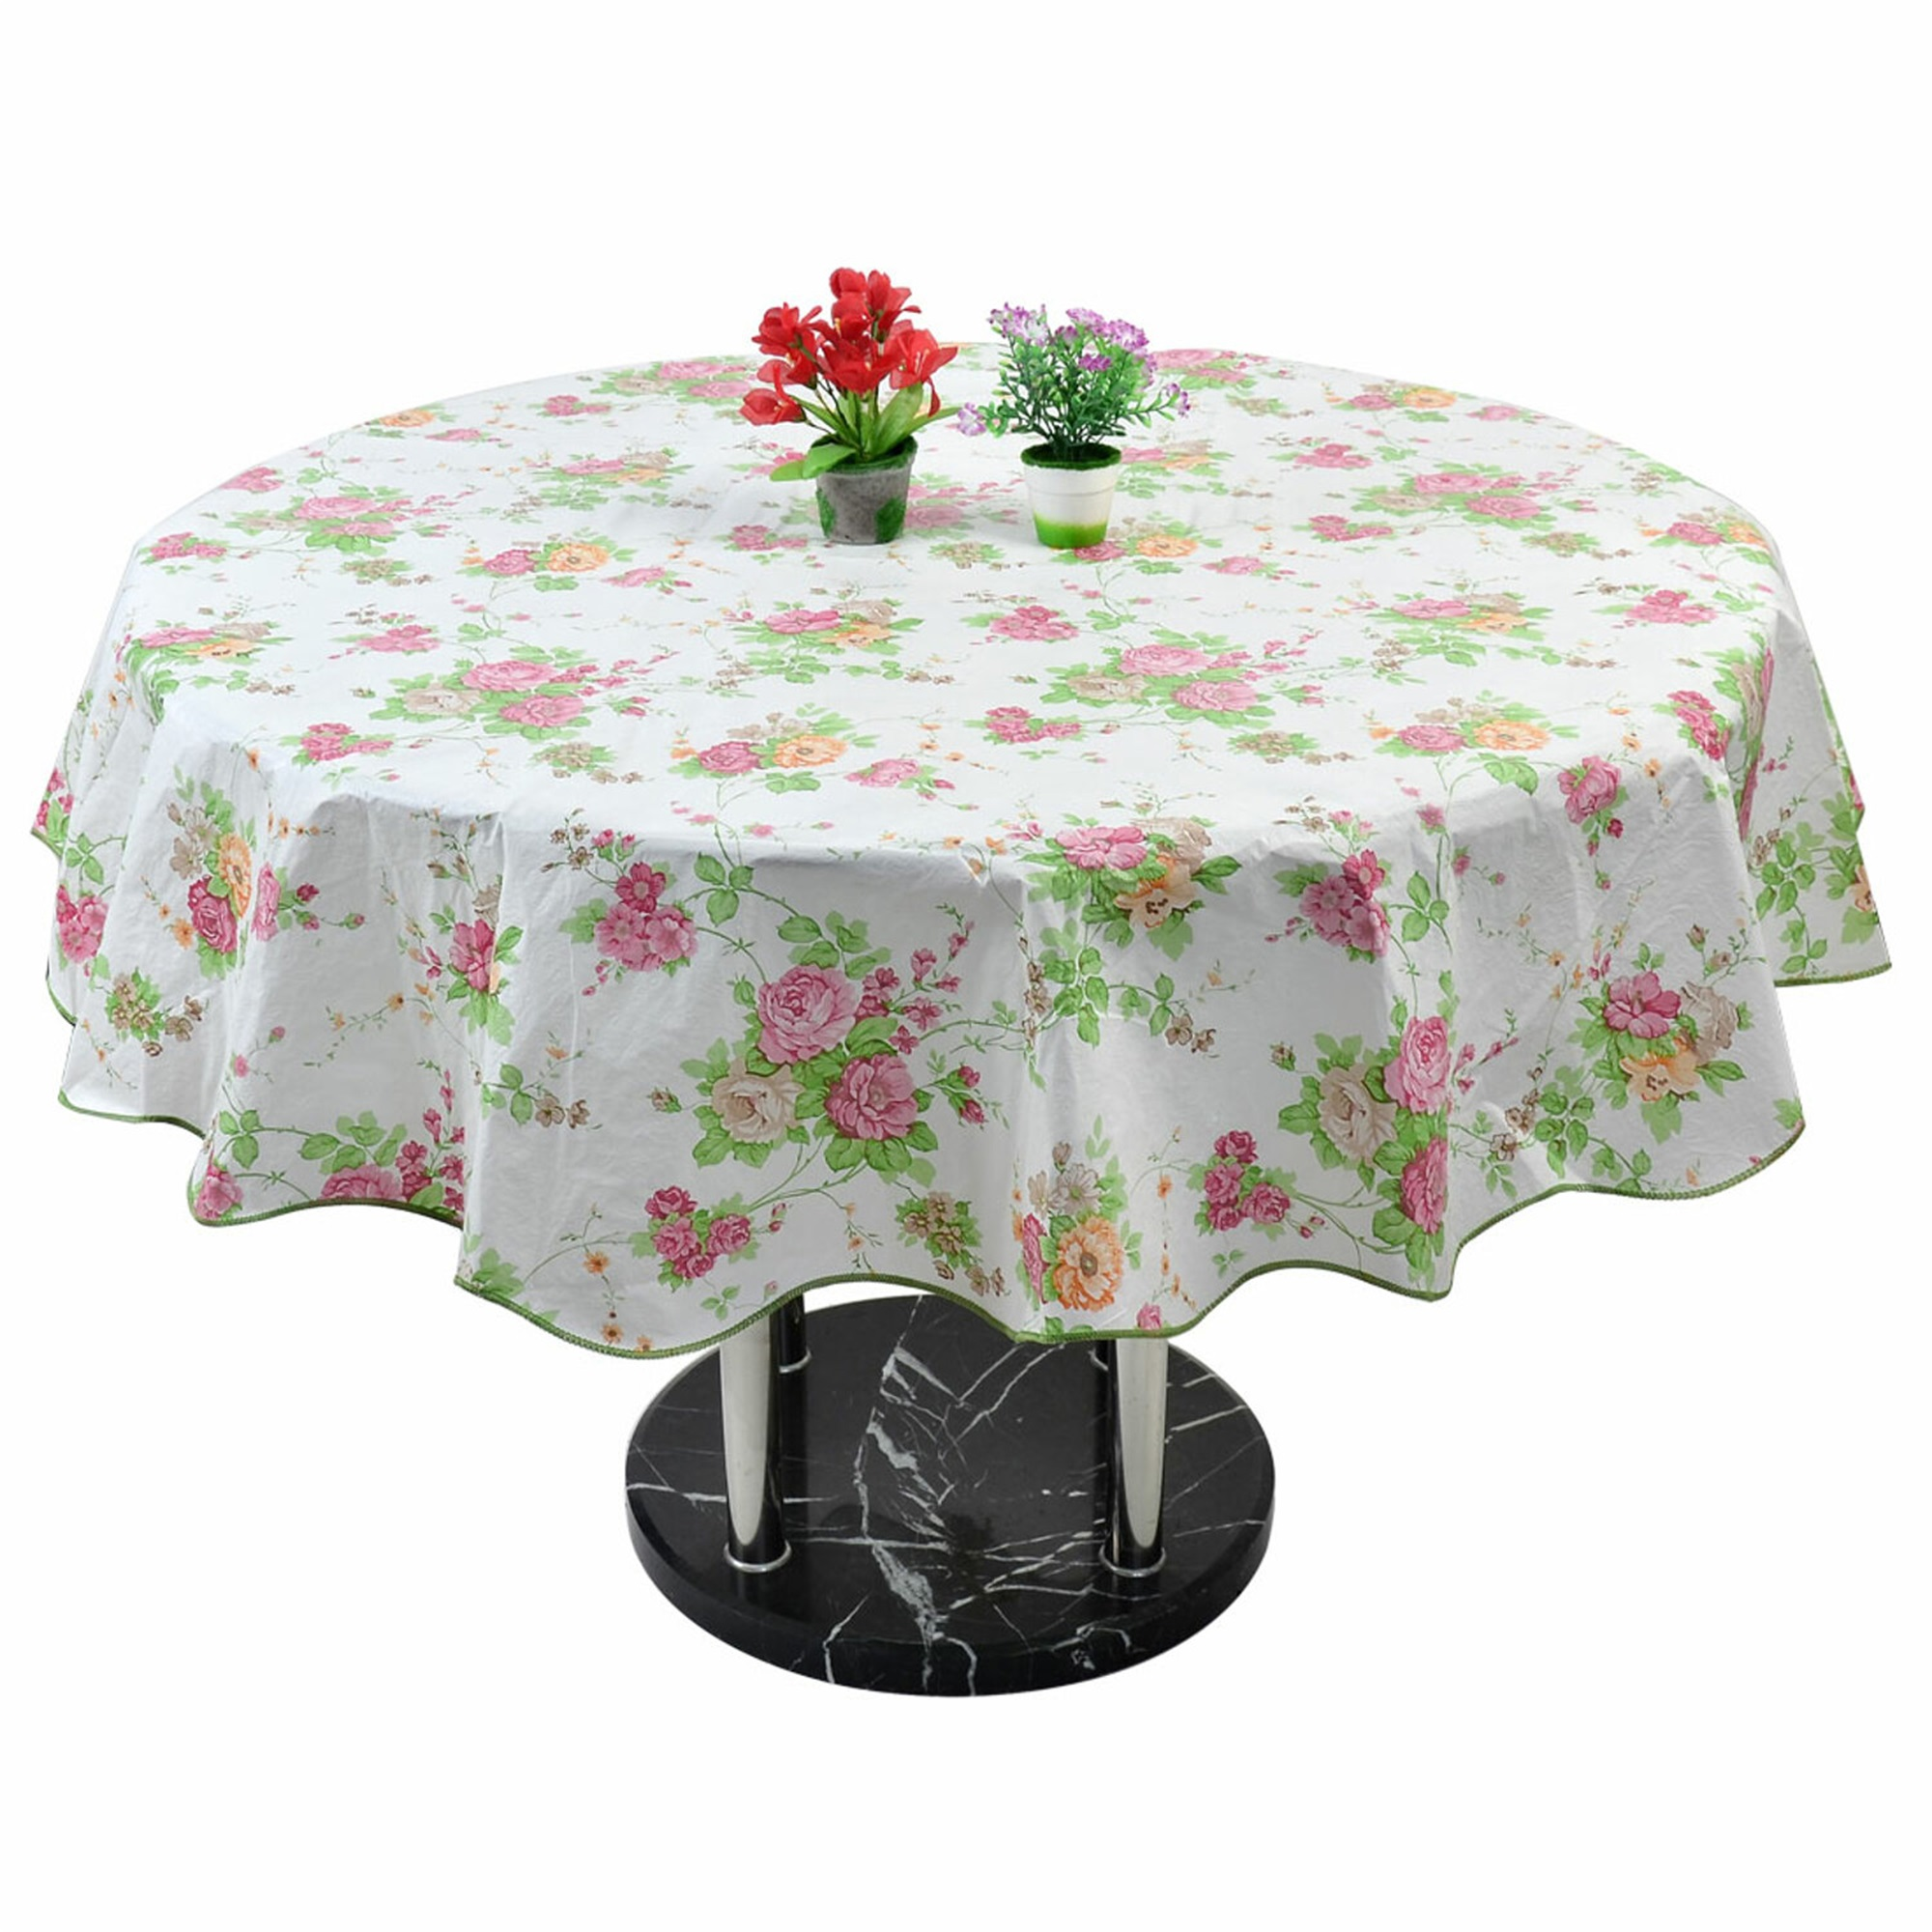 PVC Plastic Picnic Round Rose Pattern Water/Oil Resistant Tablecloth Pink 60""